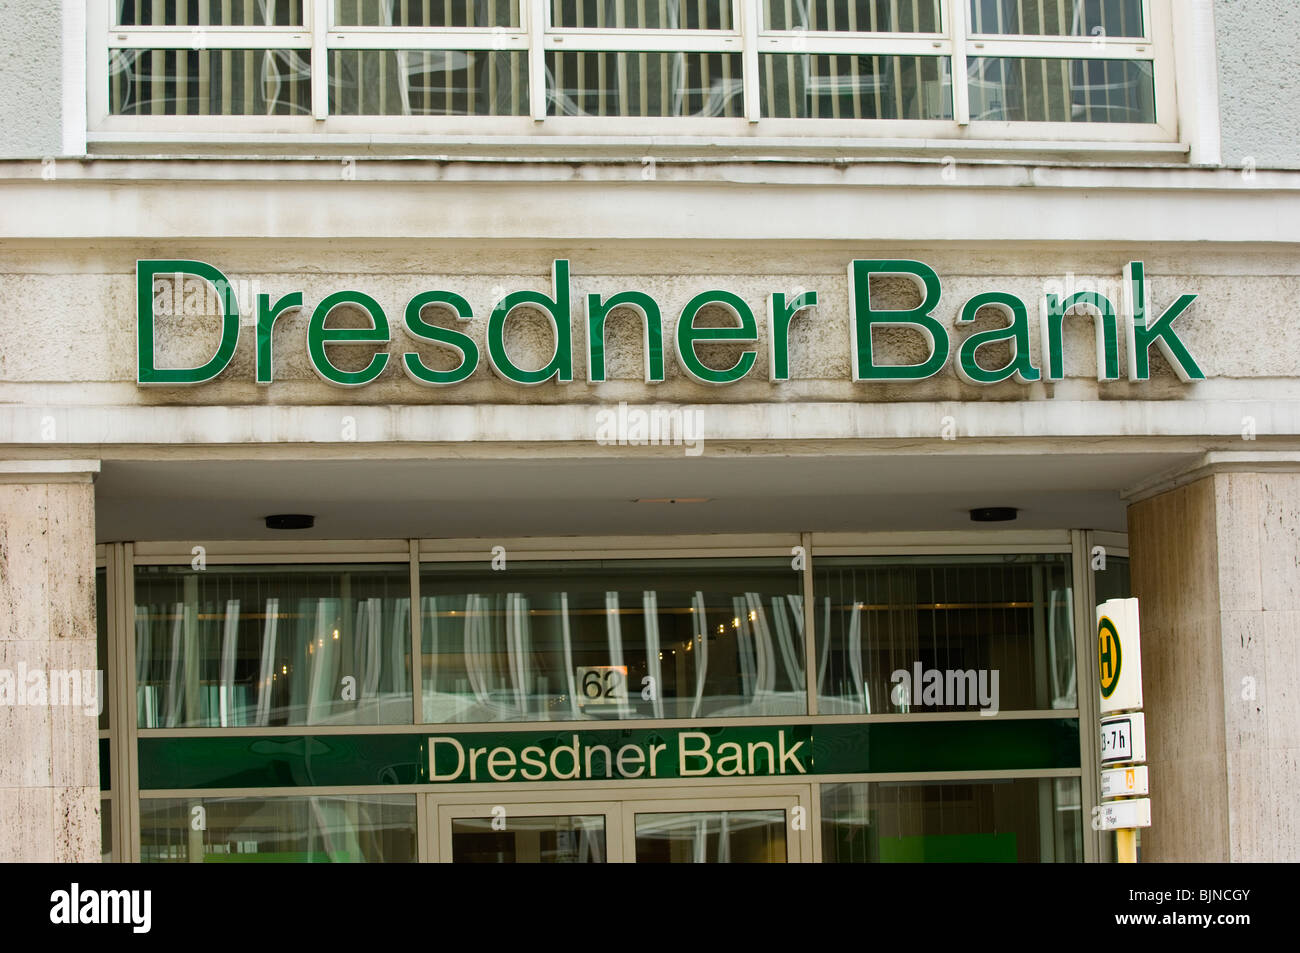 Dresdner bank Financial institution building exteriors Berlin Germany Europe - Stock Image